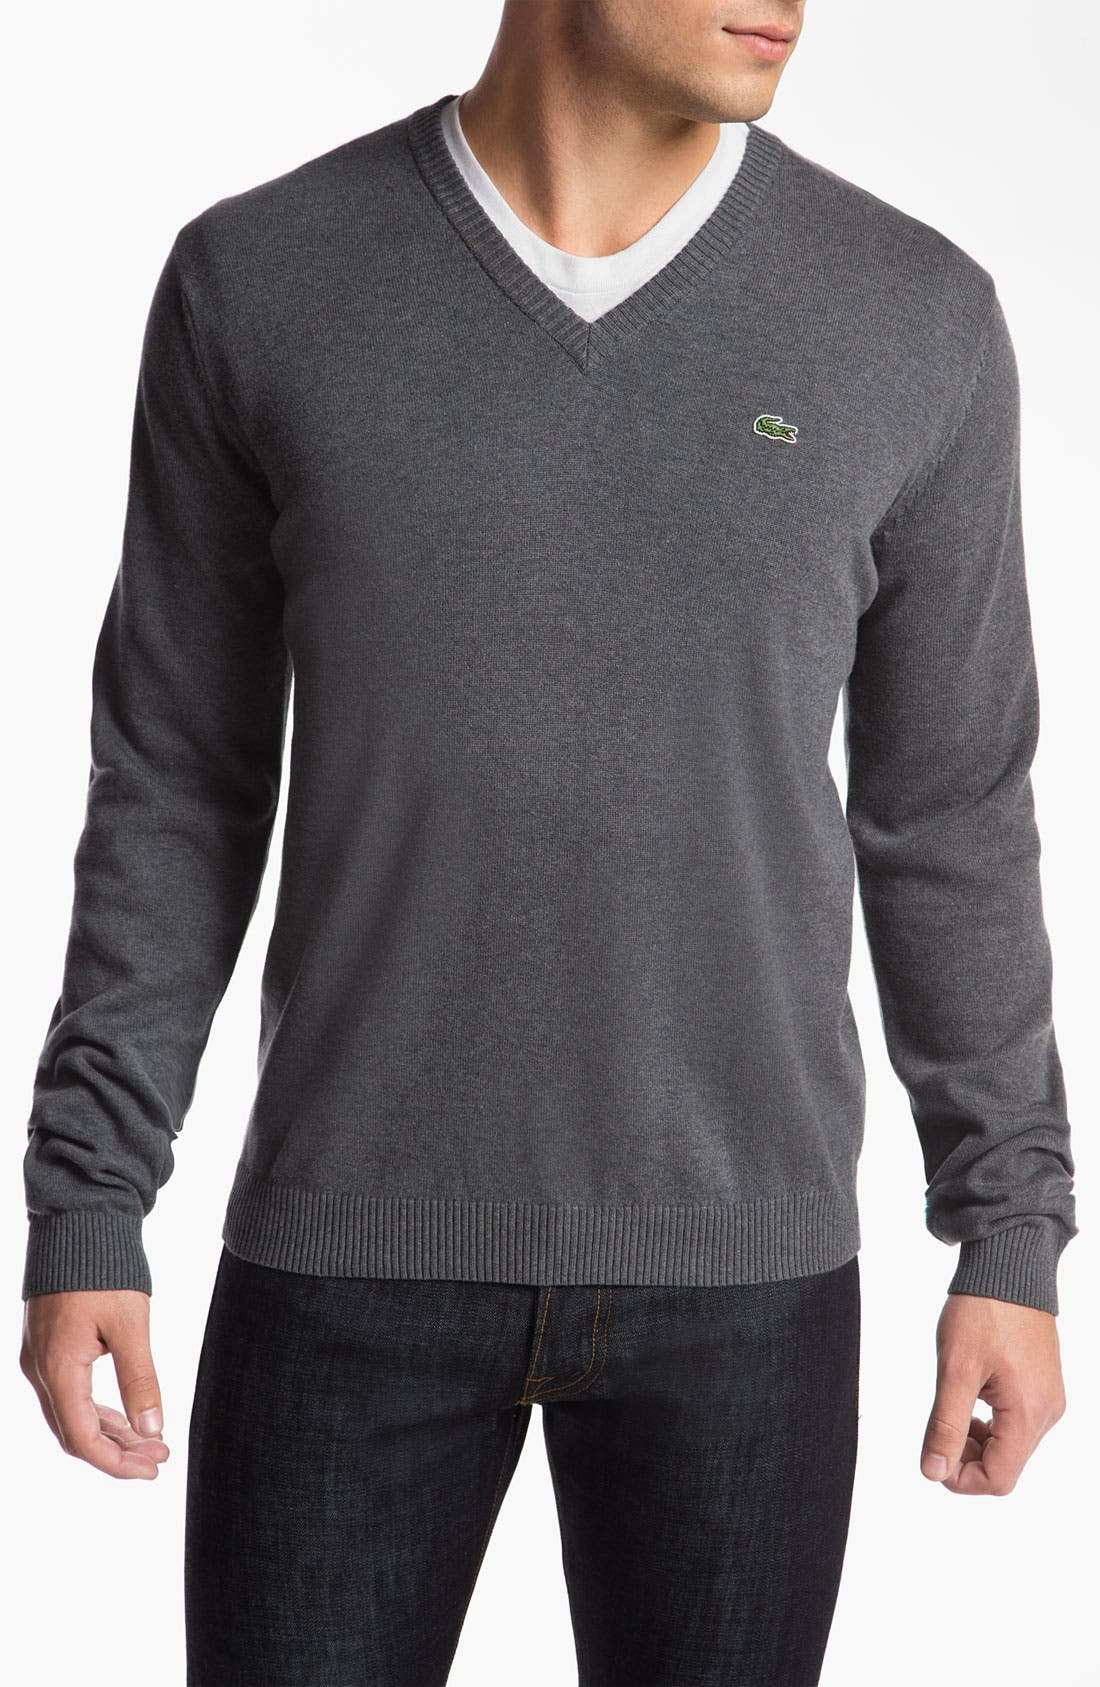 Main Image - Lacoste 'Classic' V-Neck Sweater